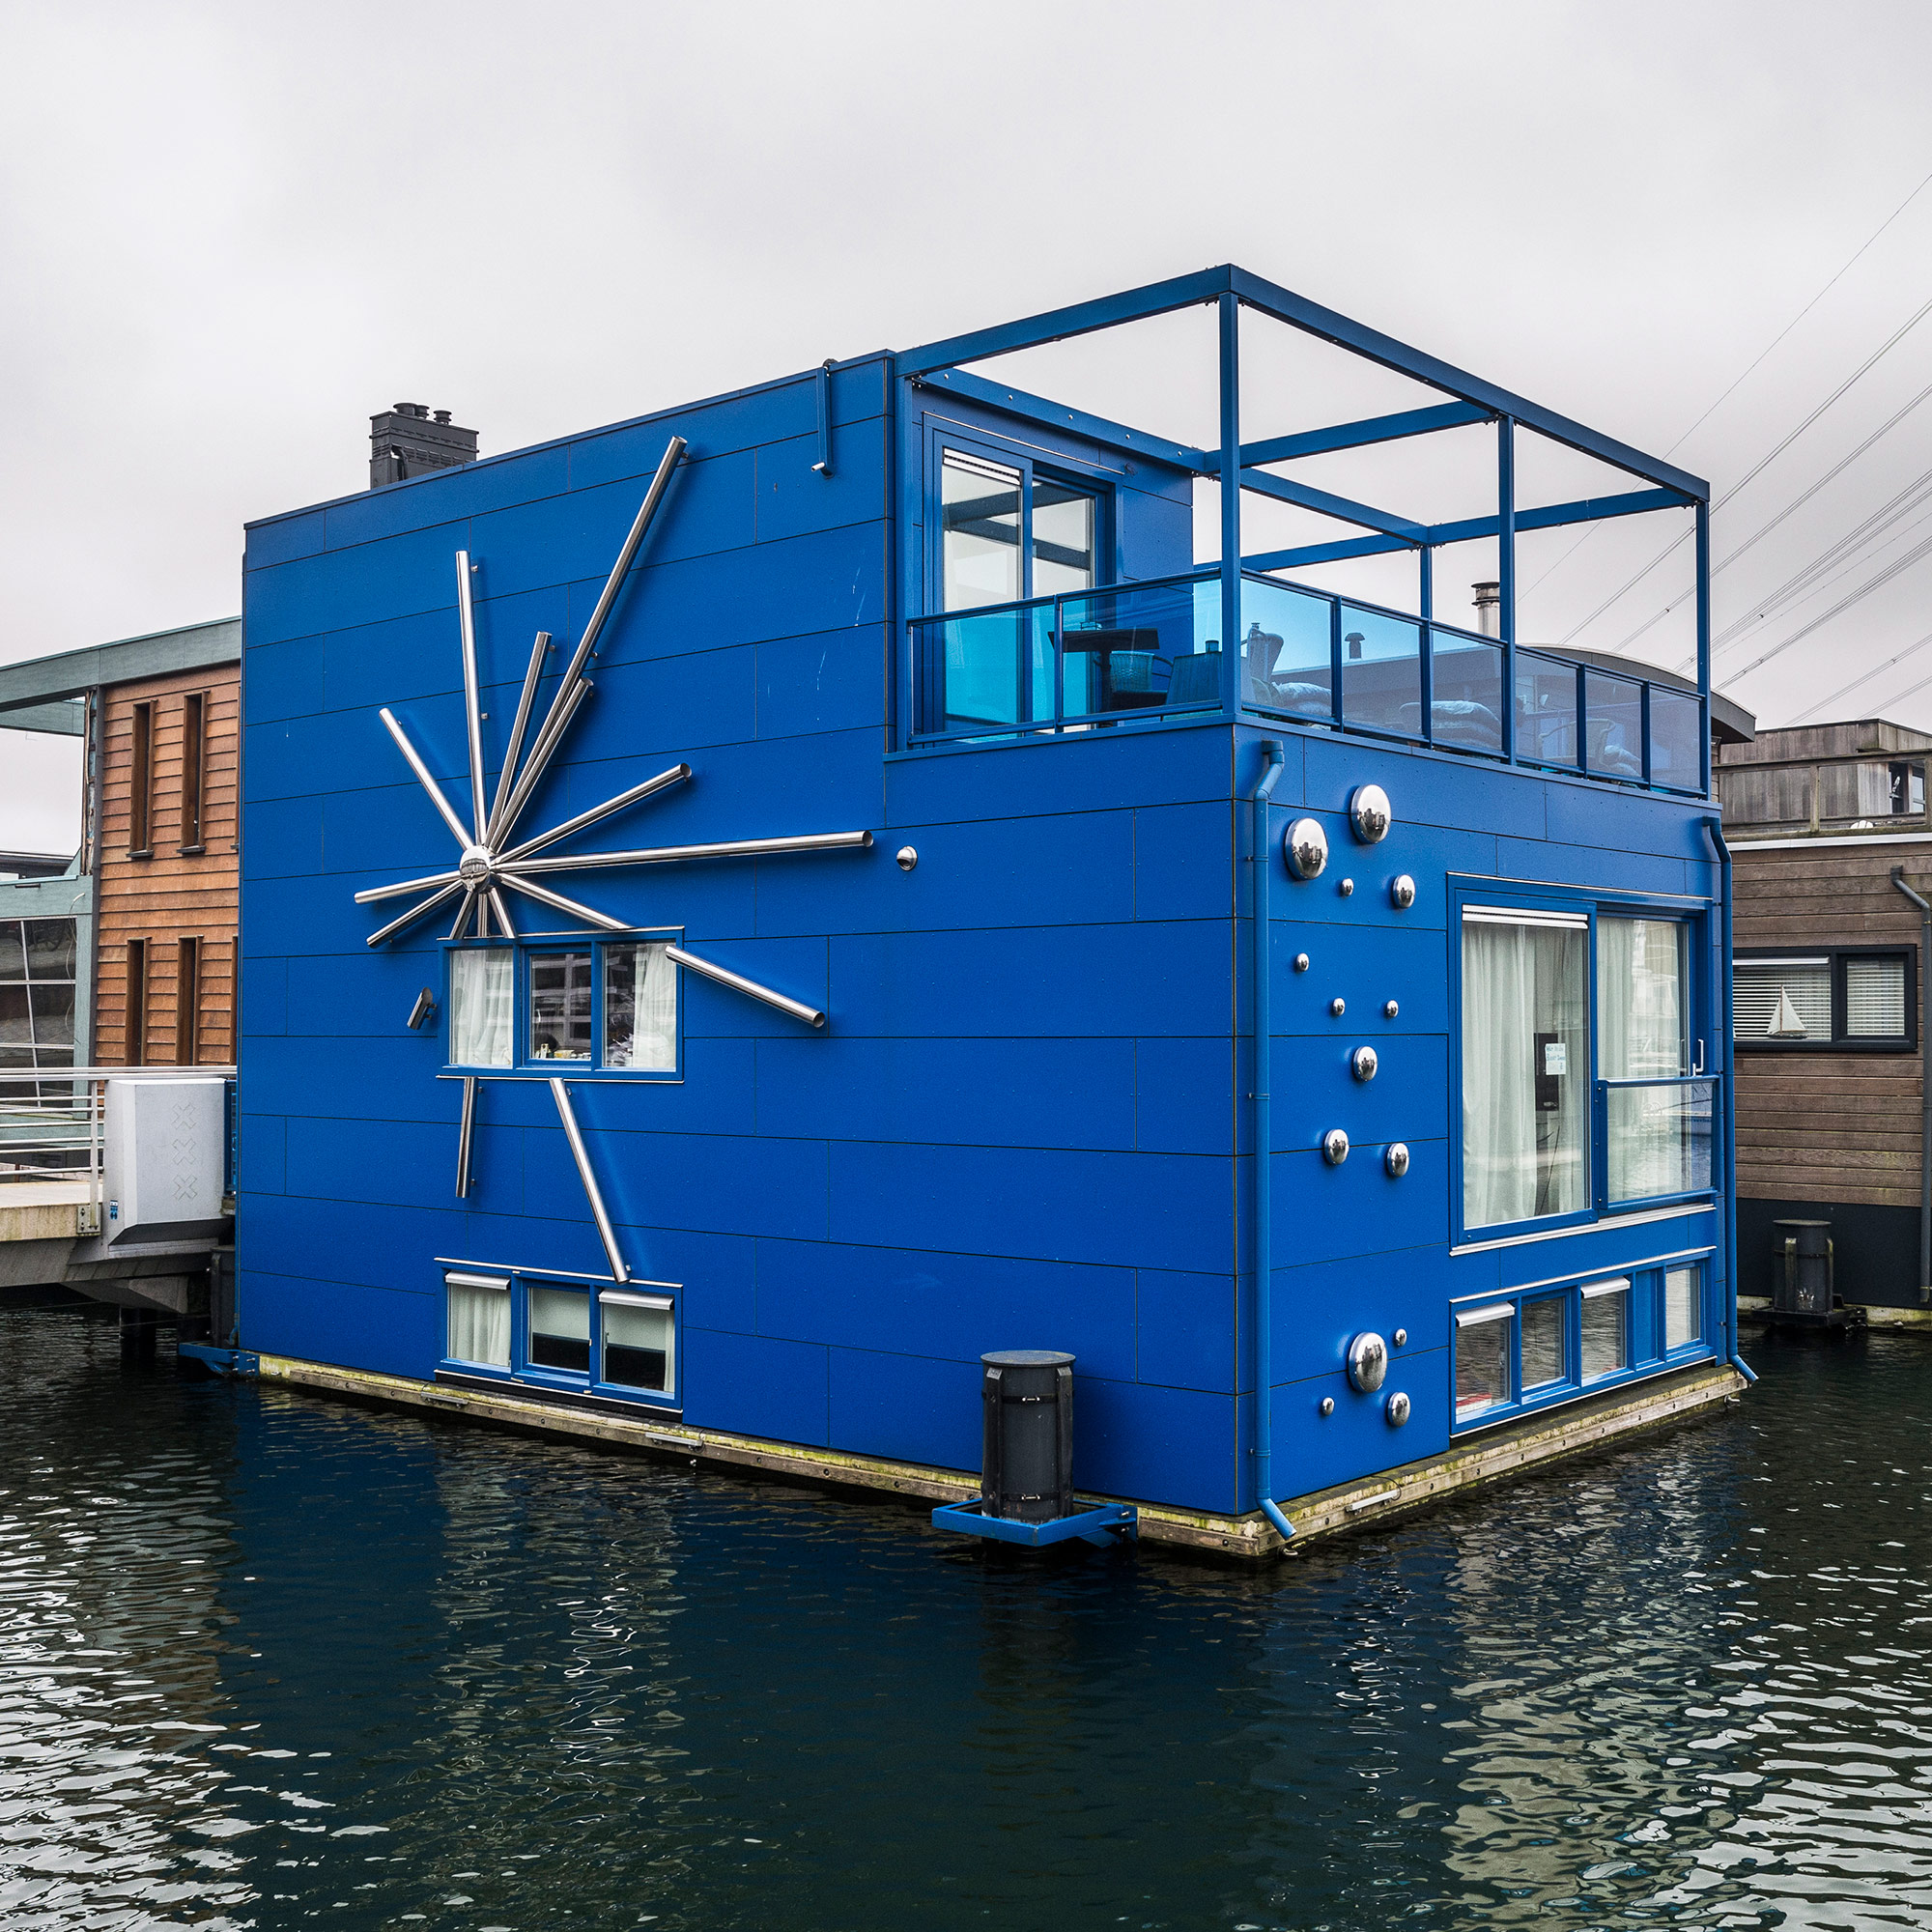 IJburg, a neighborhood of floating houses on the eastern edge of Amsterdam. (Photo by Joris van Gennip/GroundTruth)